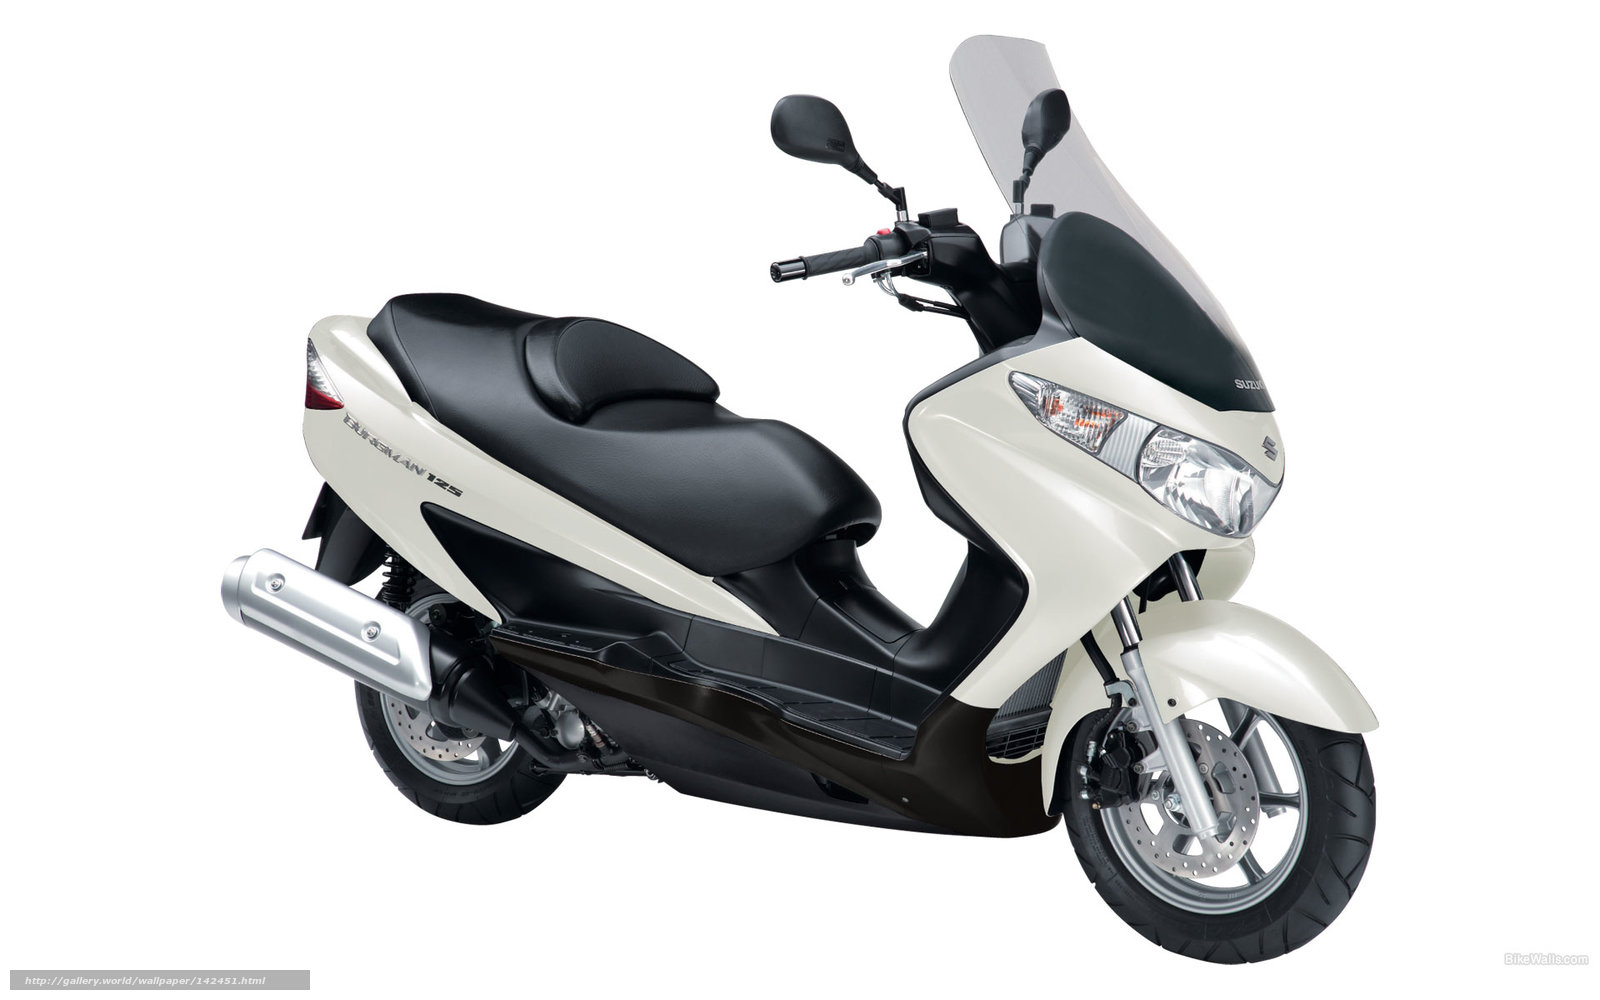 download wallpaper suzuki scooter moped burgman 125. Black Bedroom Furniture Sets. Home Design Ideas